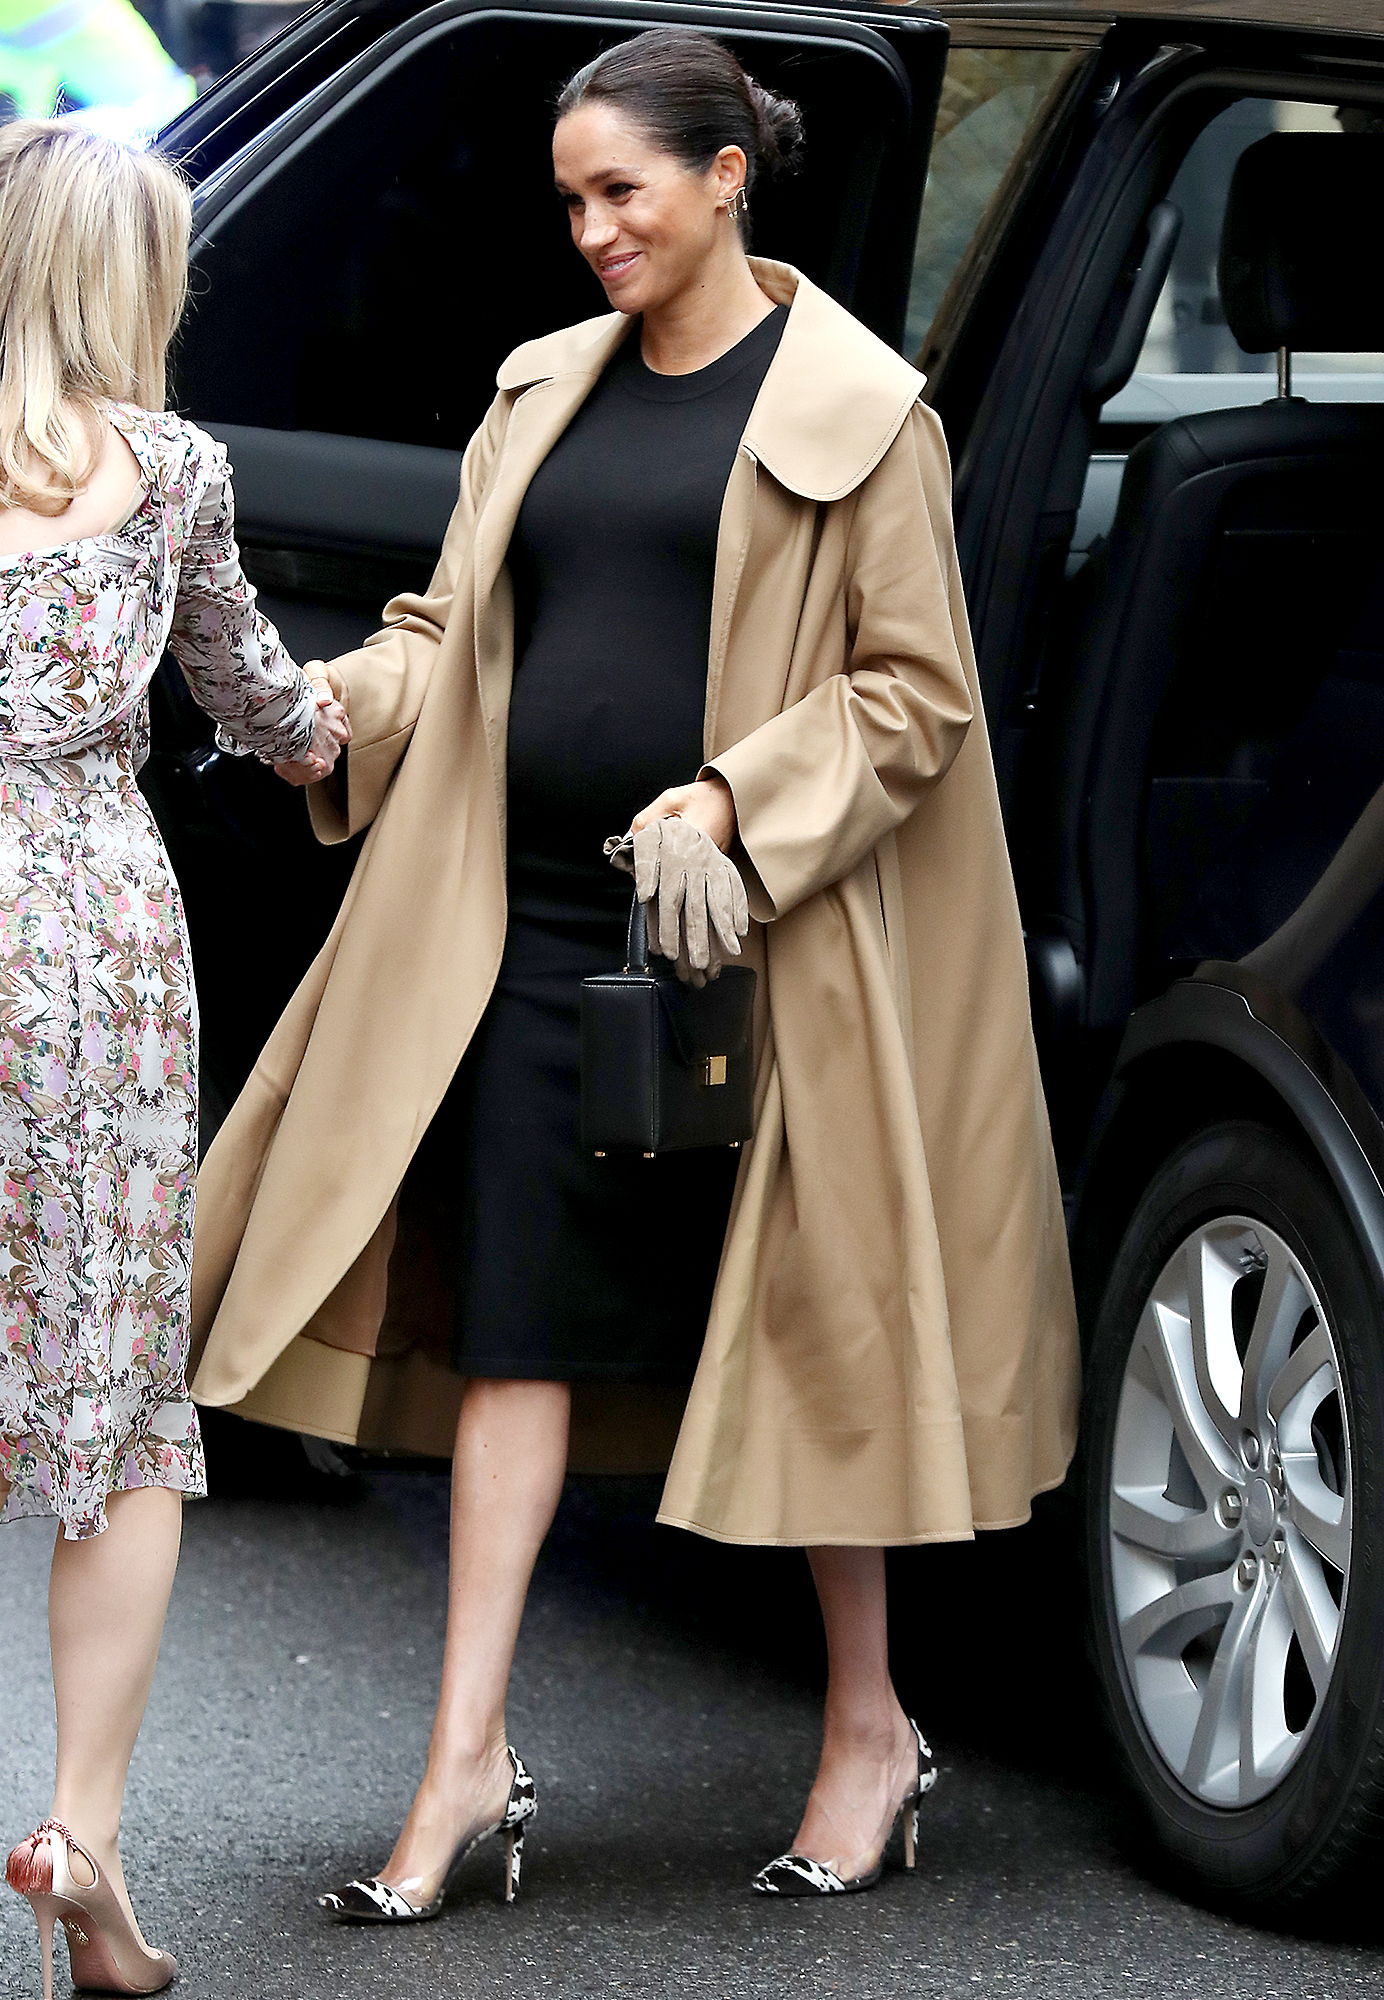 Meghan-Markle-Hatch-x-Nordstrom - Meghan, Duchess of Sussex visits Smart Works on January 10, 2019 in London, United Kingdom.